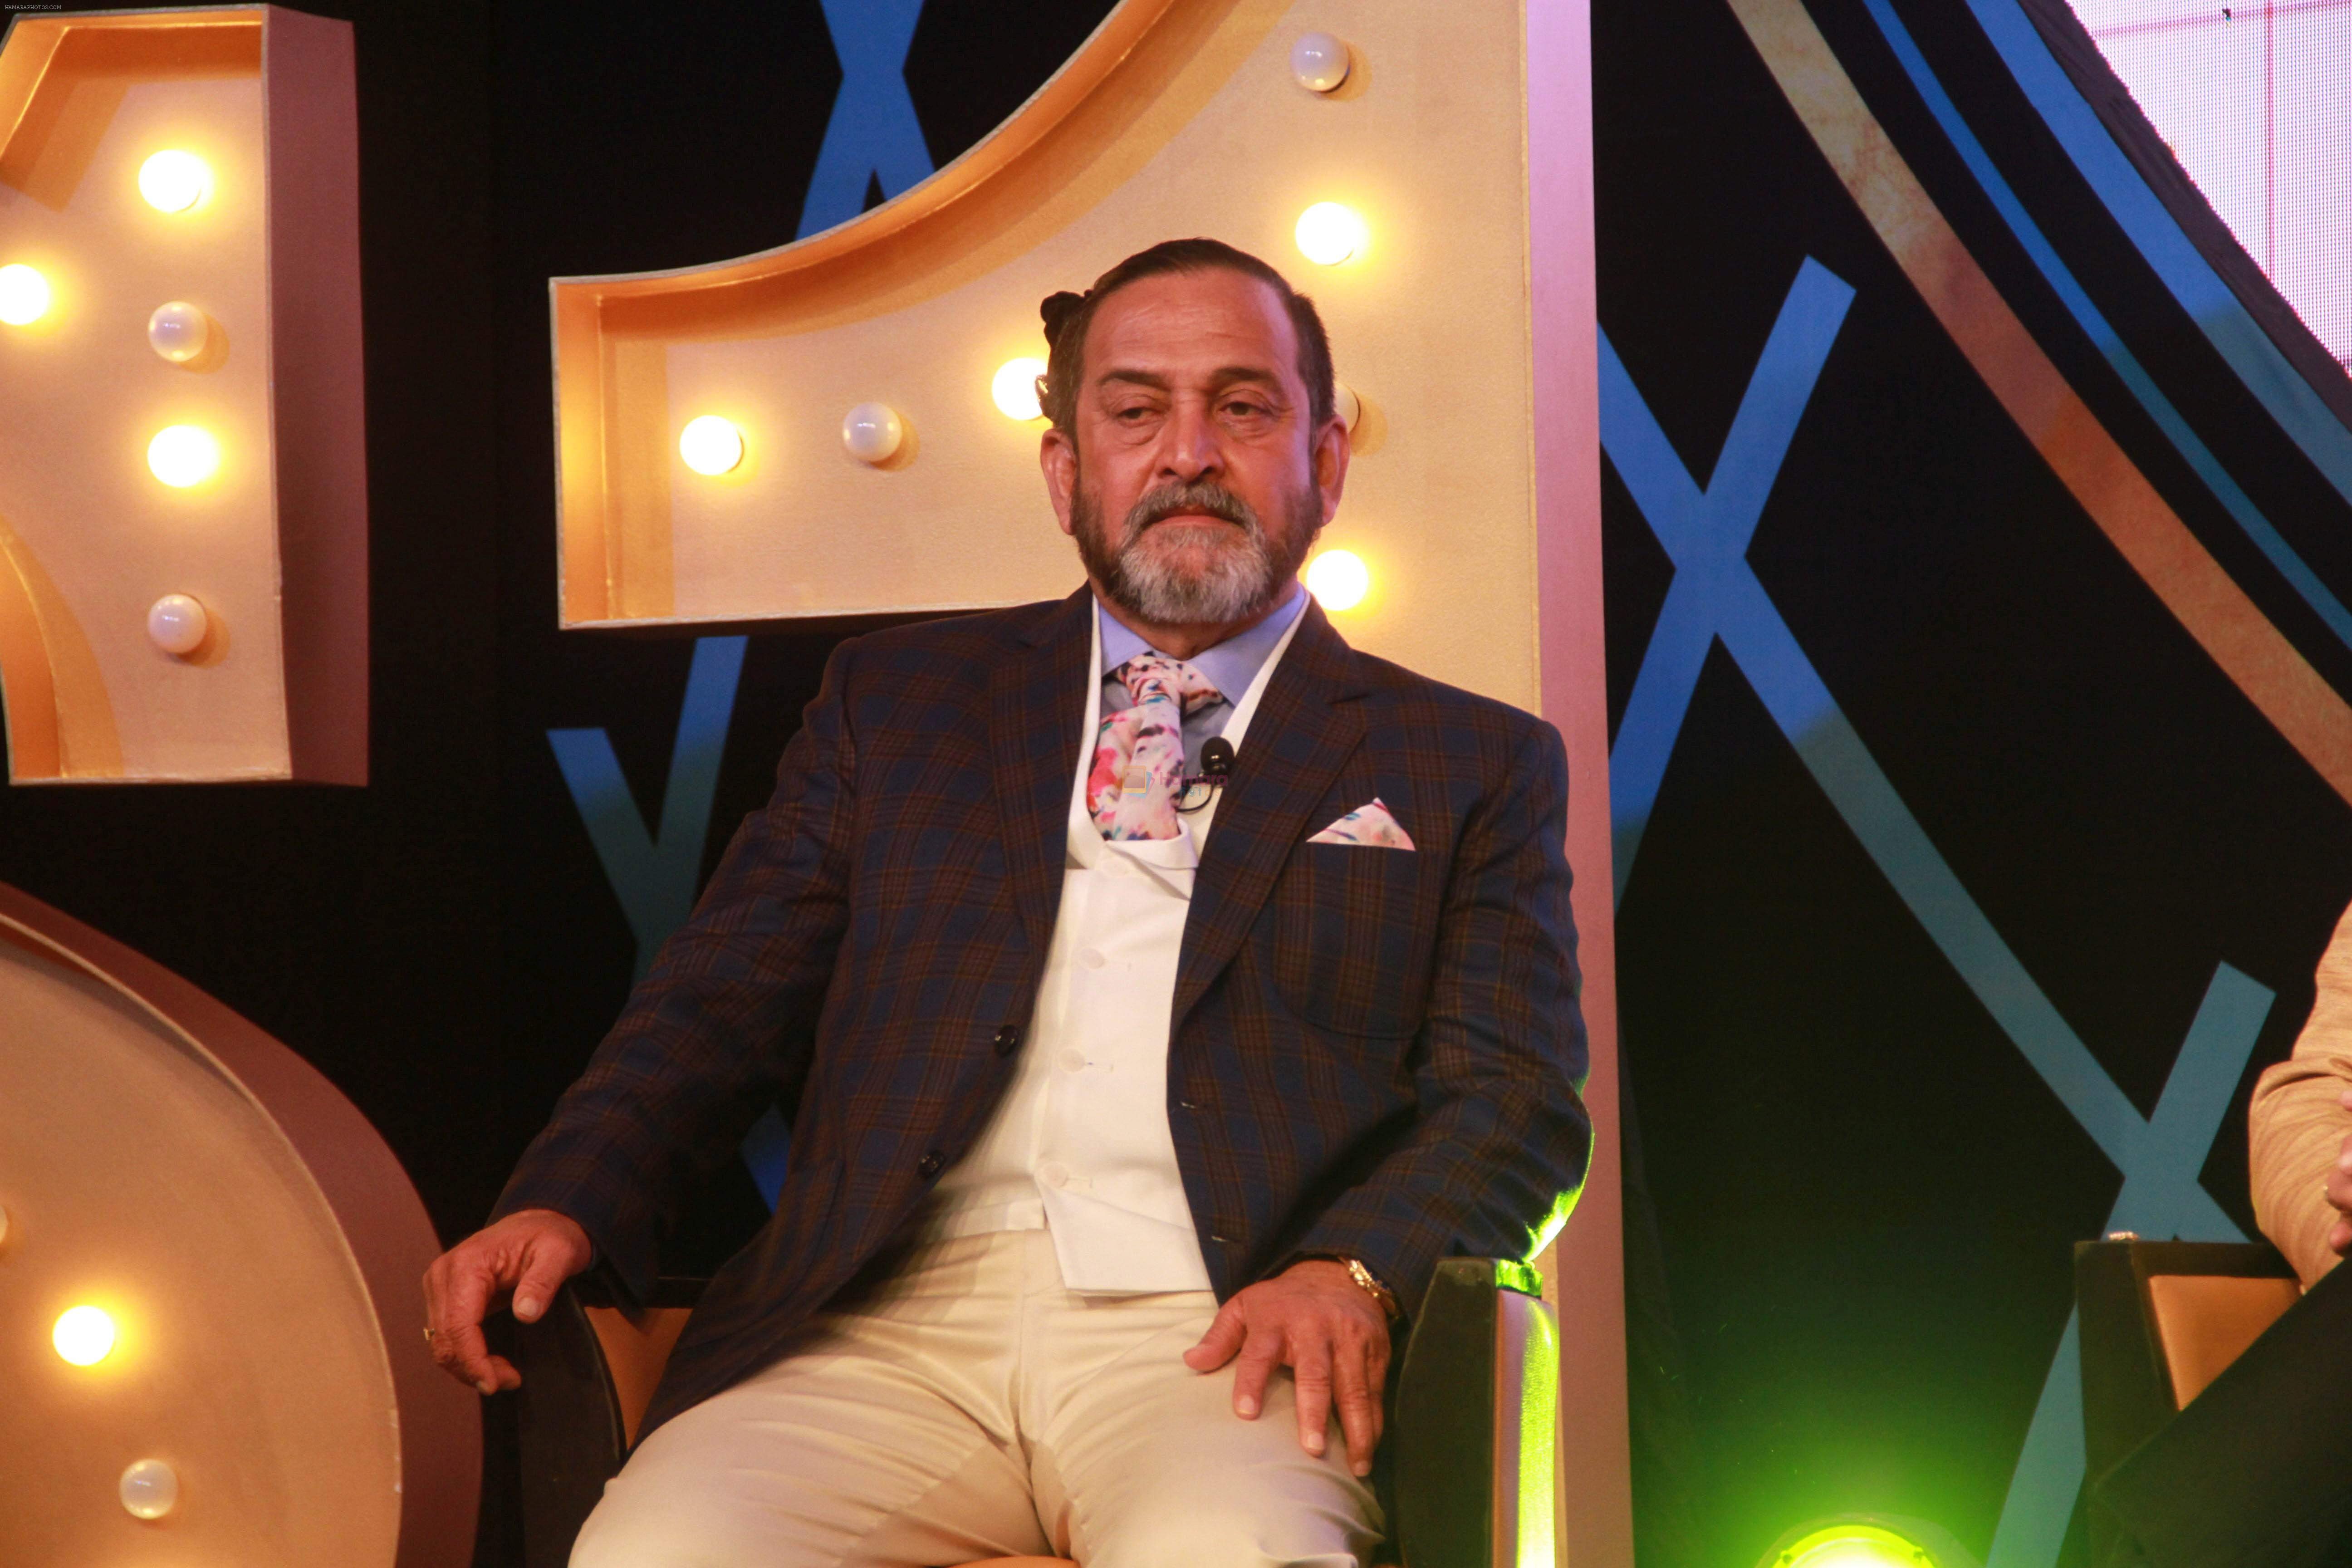 Mahesh Manjrekar at the Launch of Bigg Boss marathi at Trident bkc in mumbai on 6th April 2018